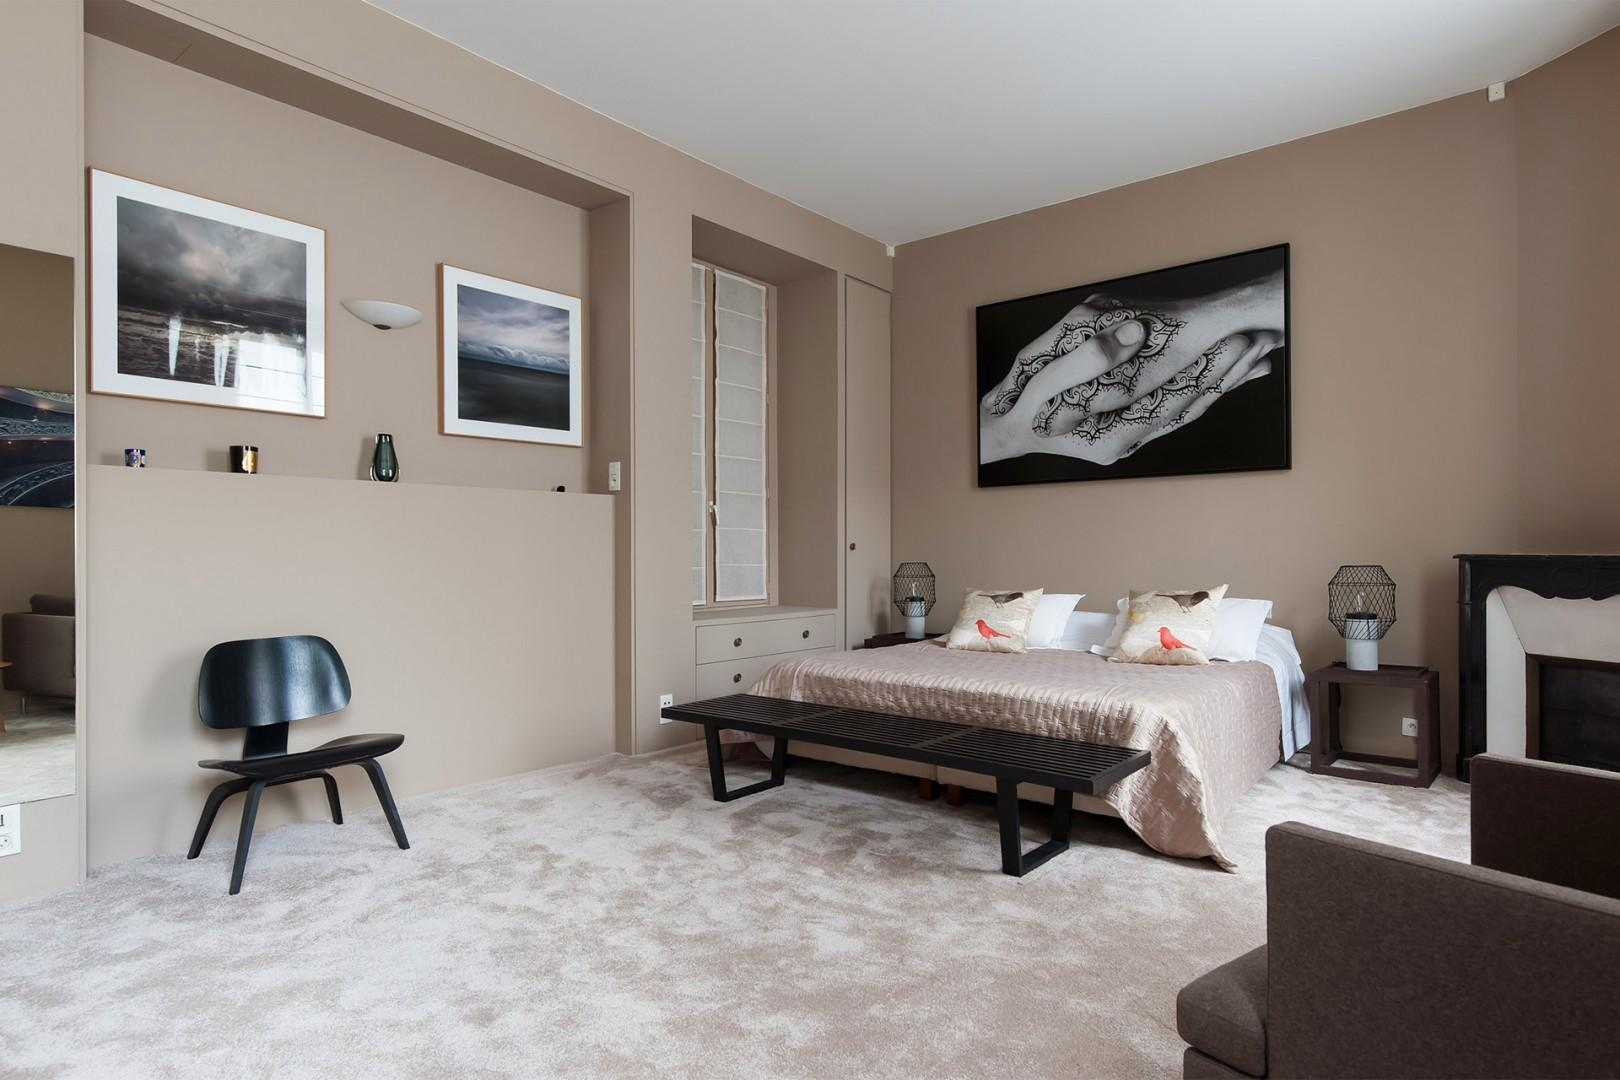 The bedroom exudes luxury and artistic flair.